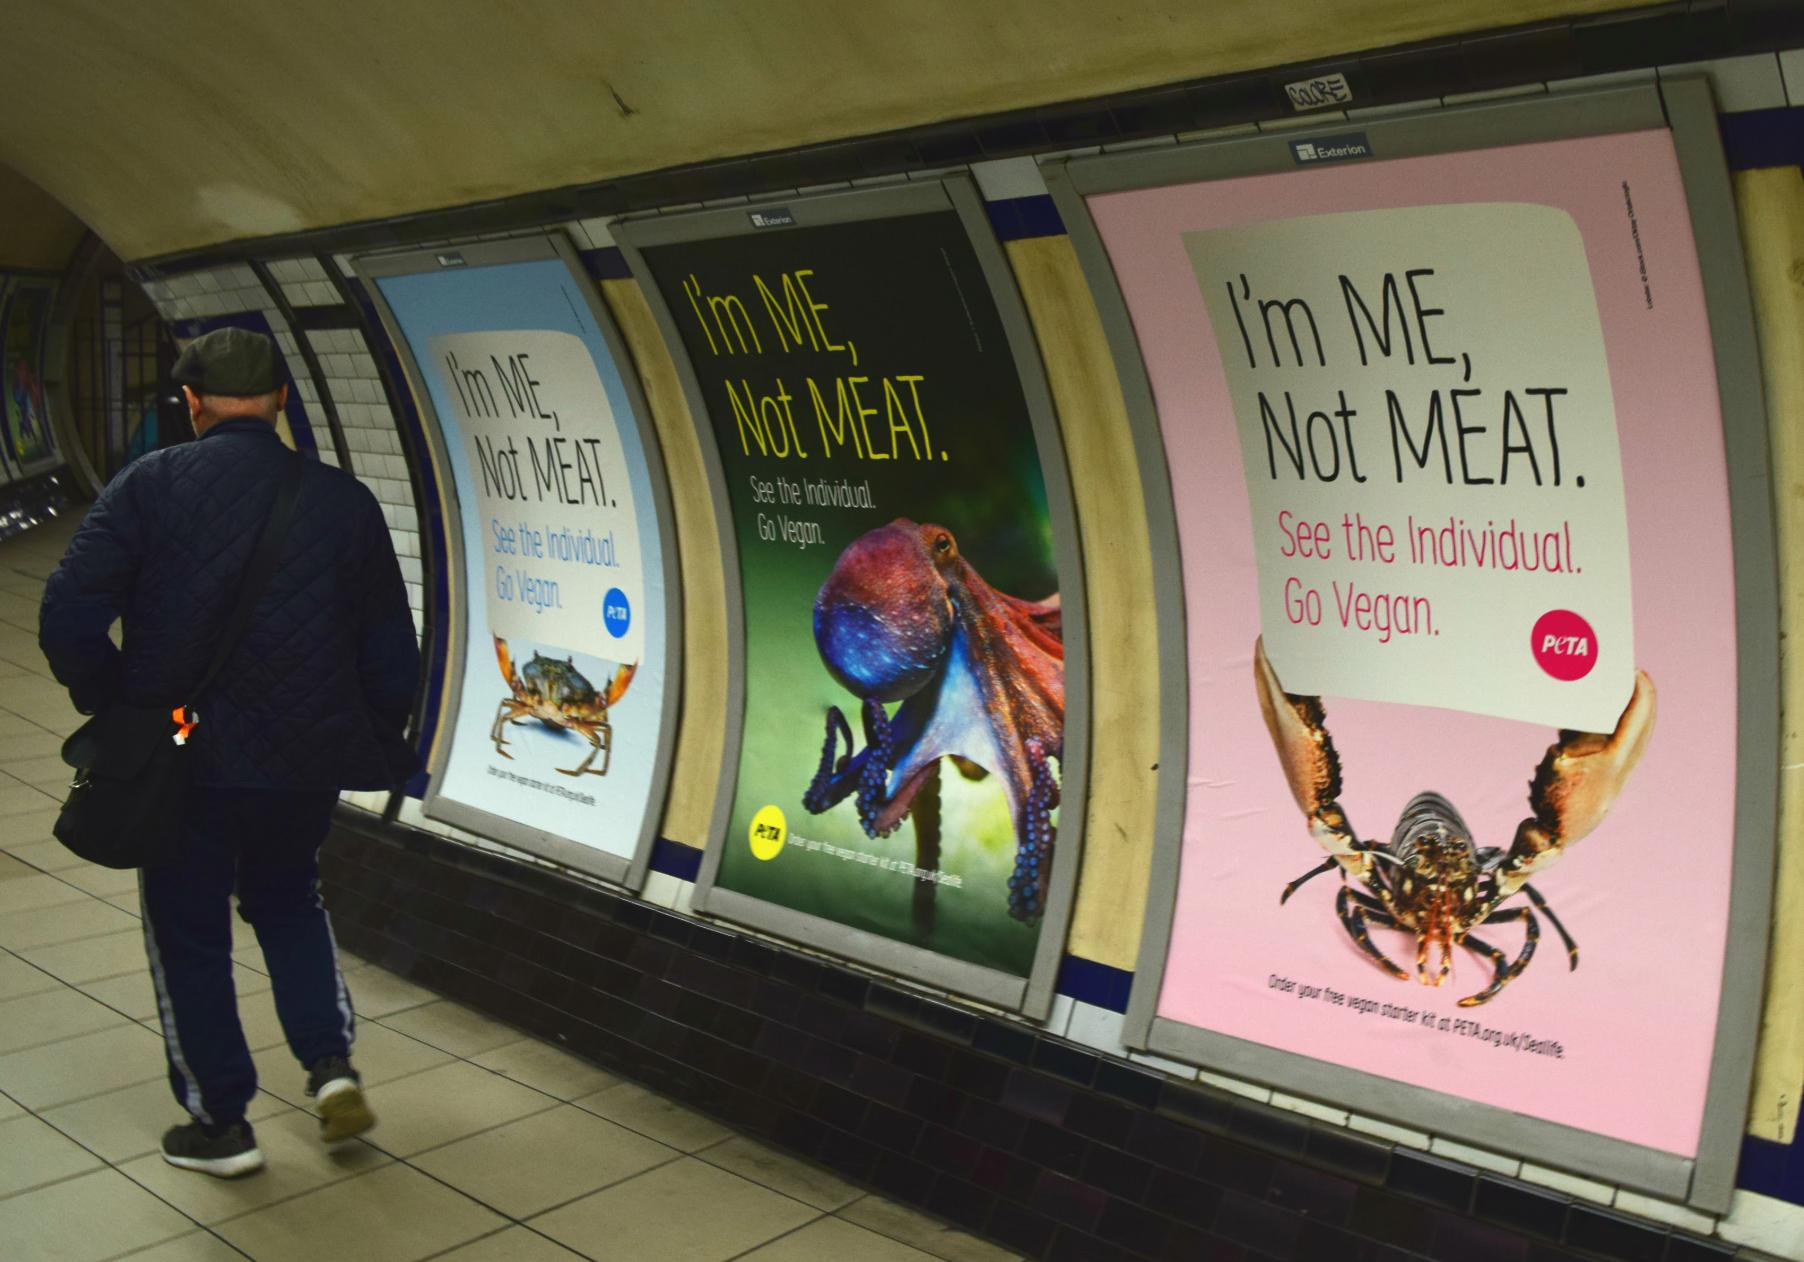 Vegan posters by PETA at Clapham Common tube station